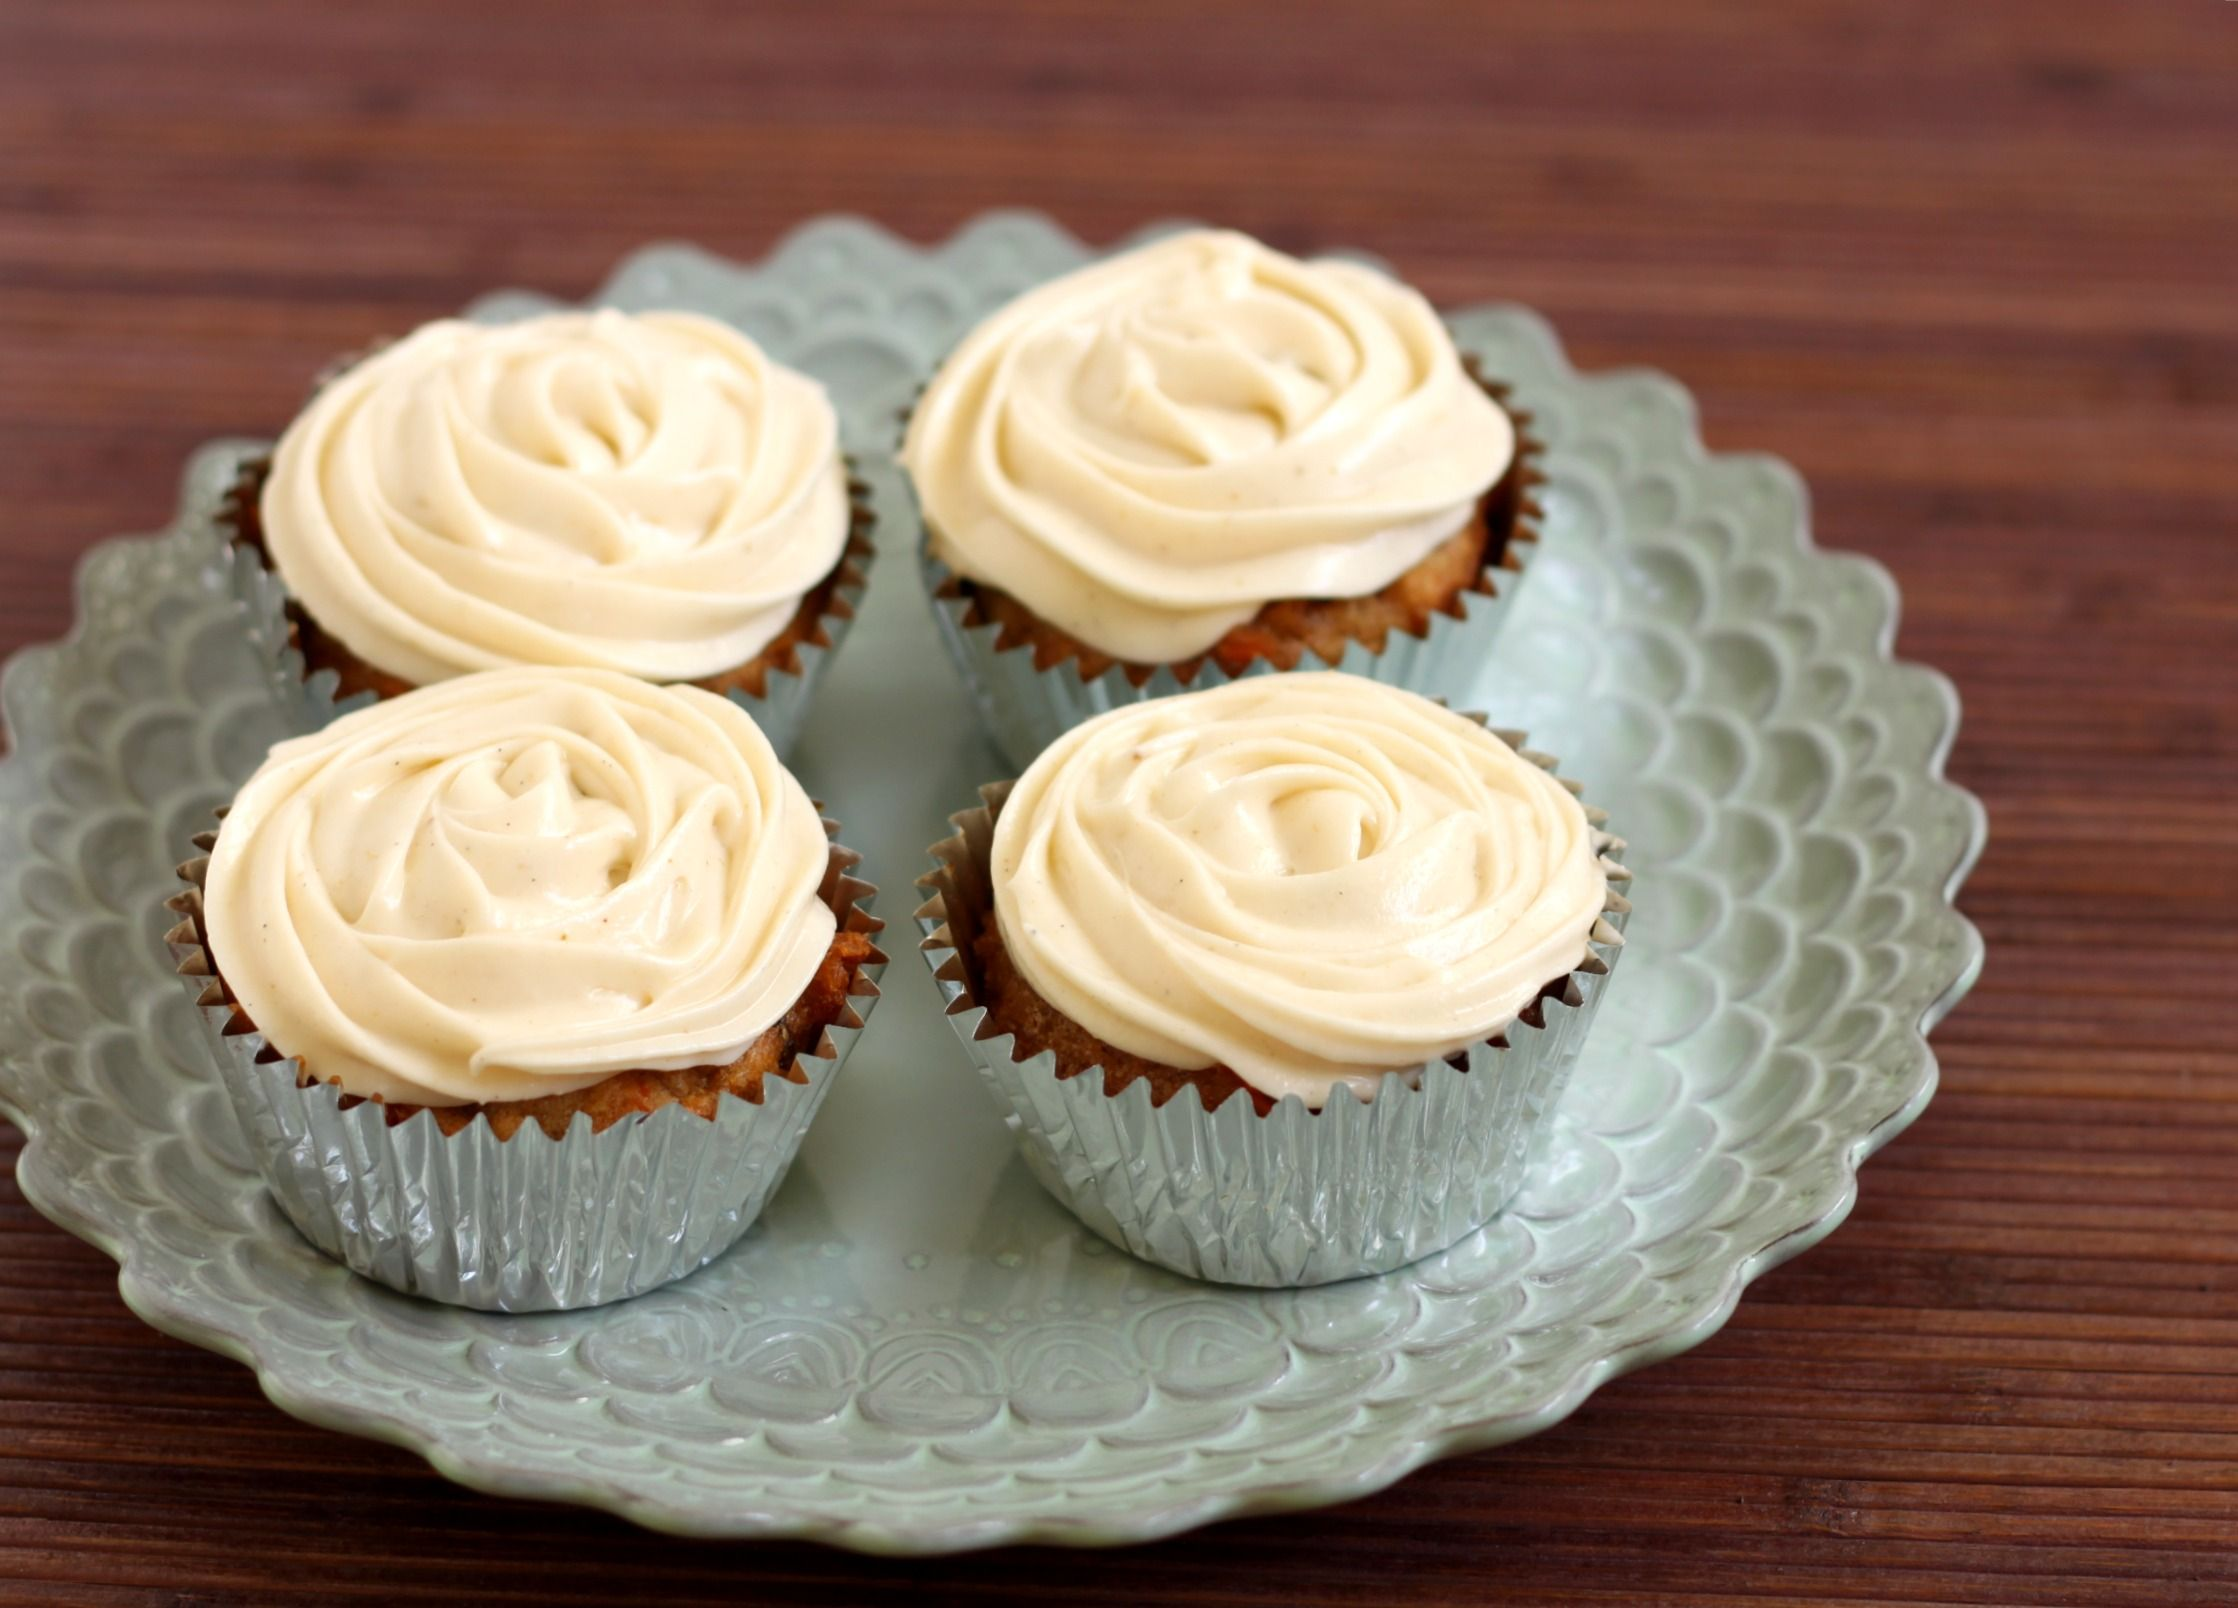 cupcake recipes for bridal shower%0A Carrot Cake Cupcakes with Cardamom Cream Cheese Frosting